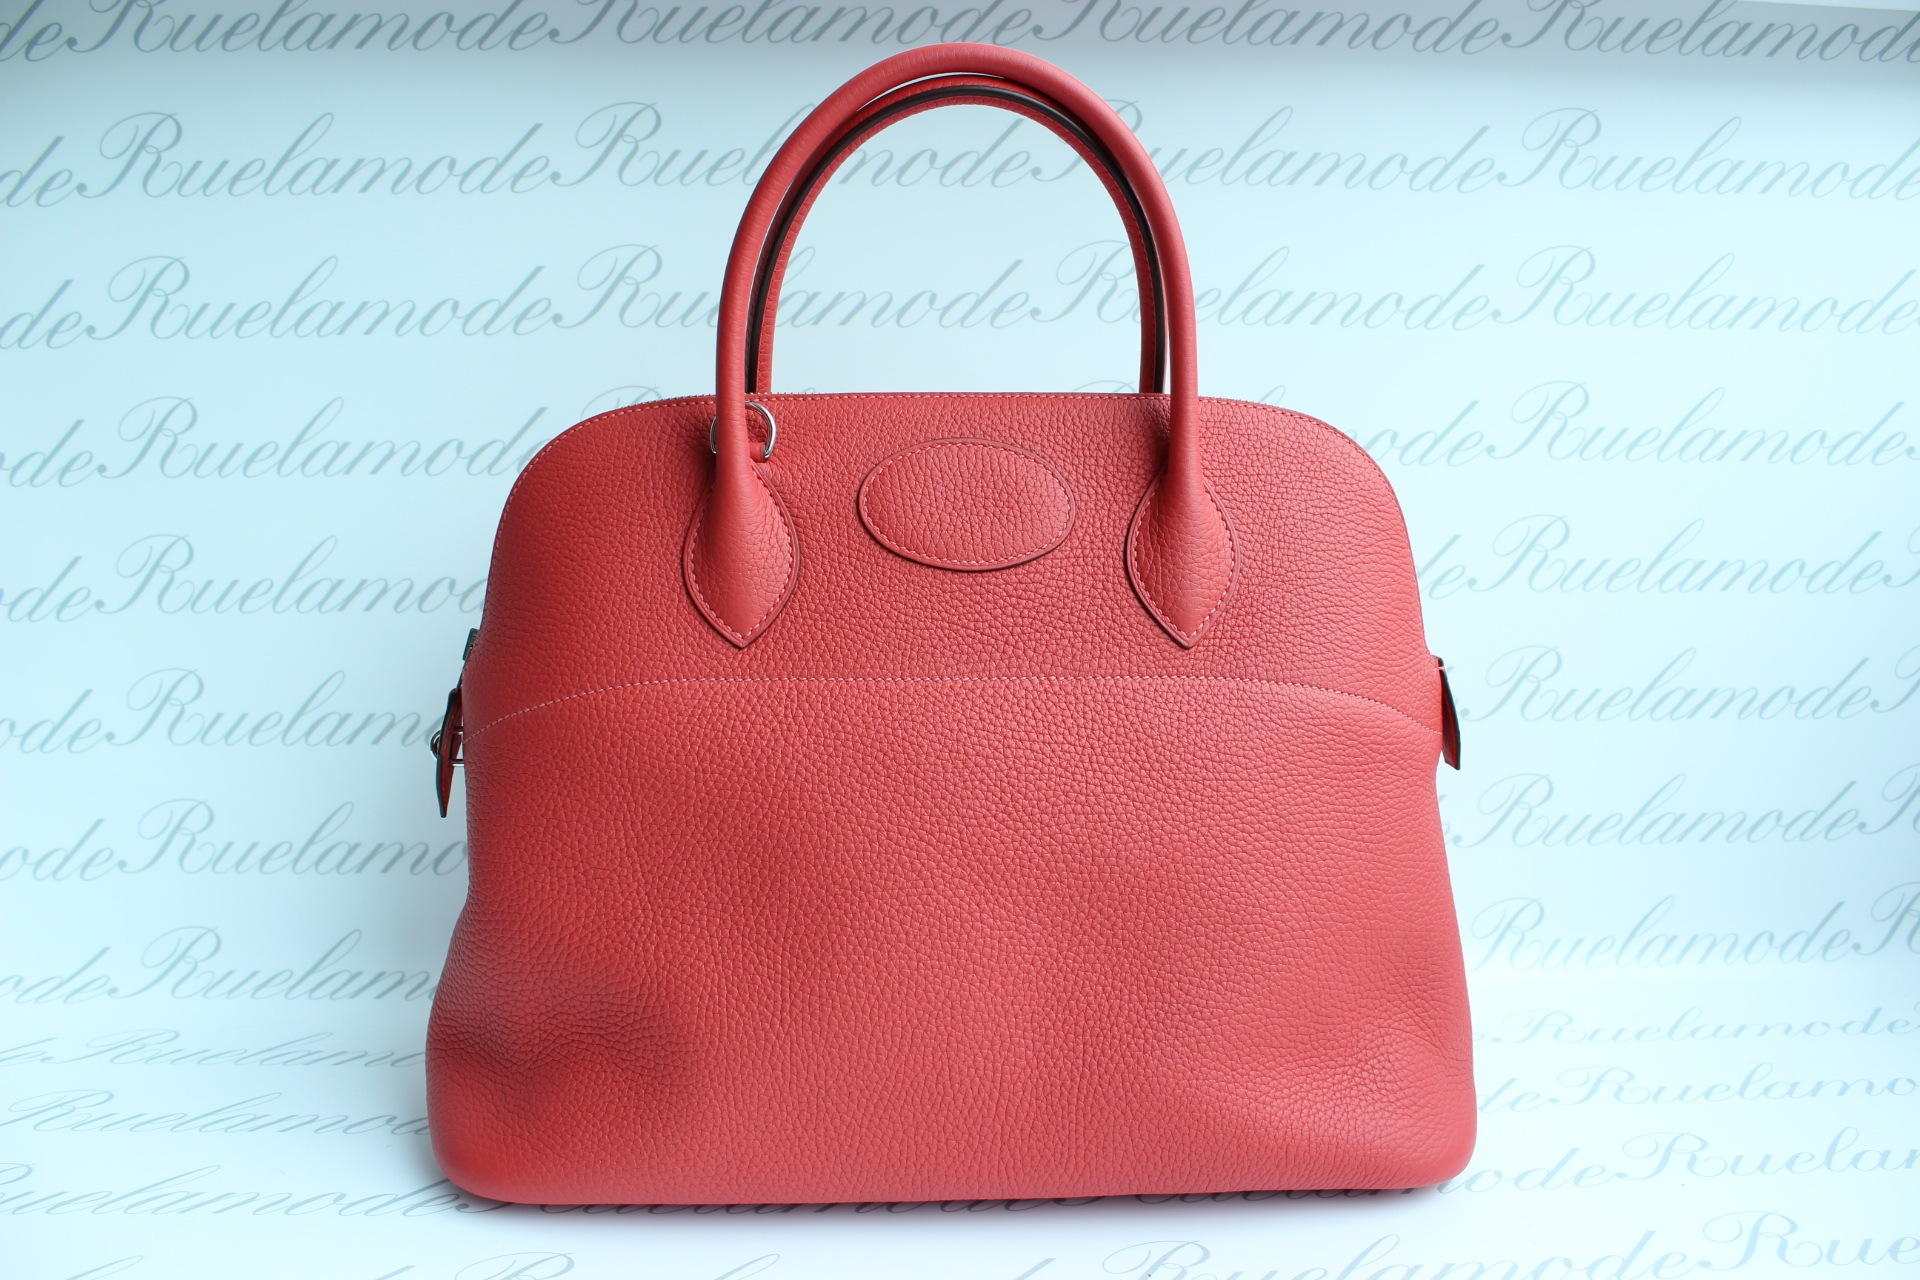 authentic hermes bags outlet - hermes azap ruby